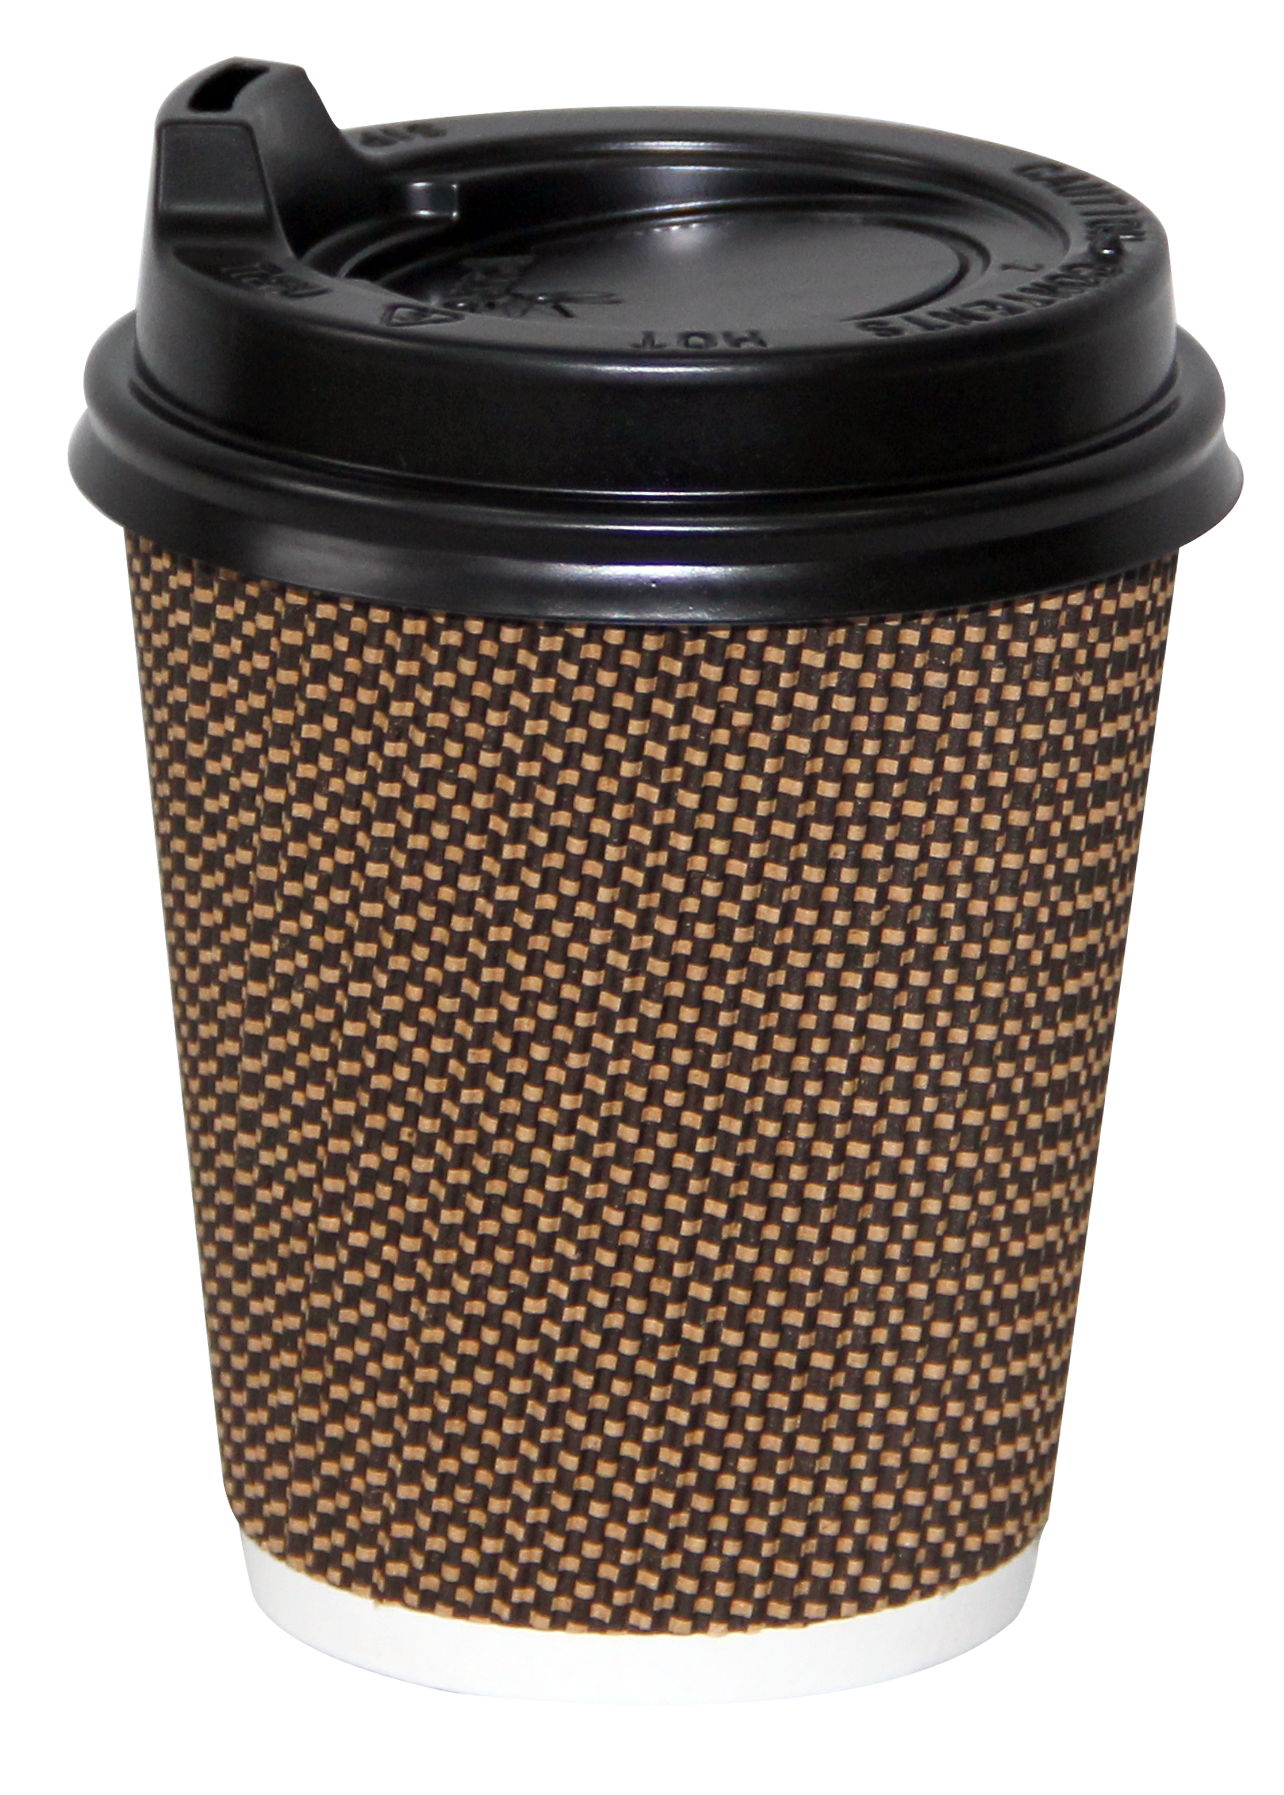 8oz Crinkle Gold and Brown - Coffee Cup 80mm ANR